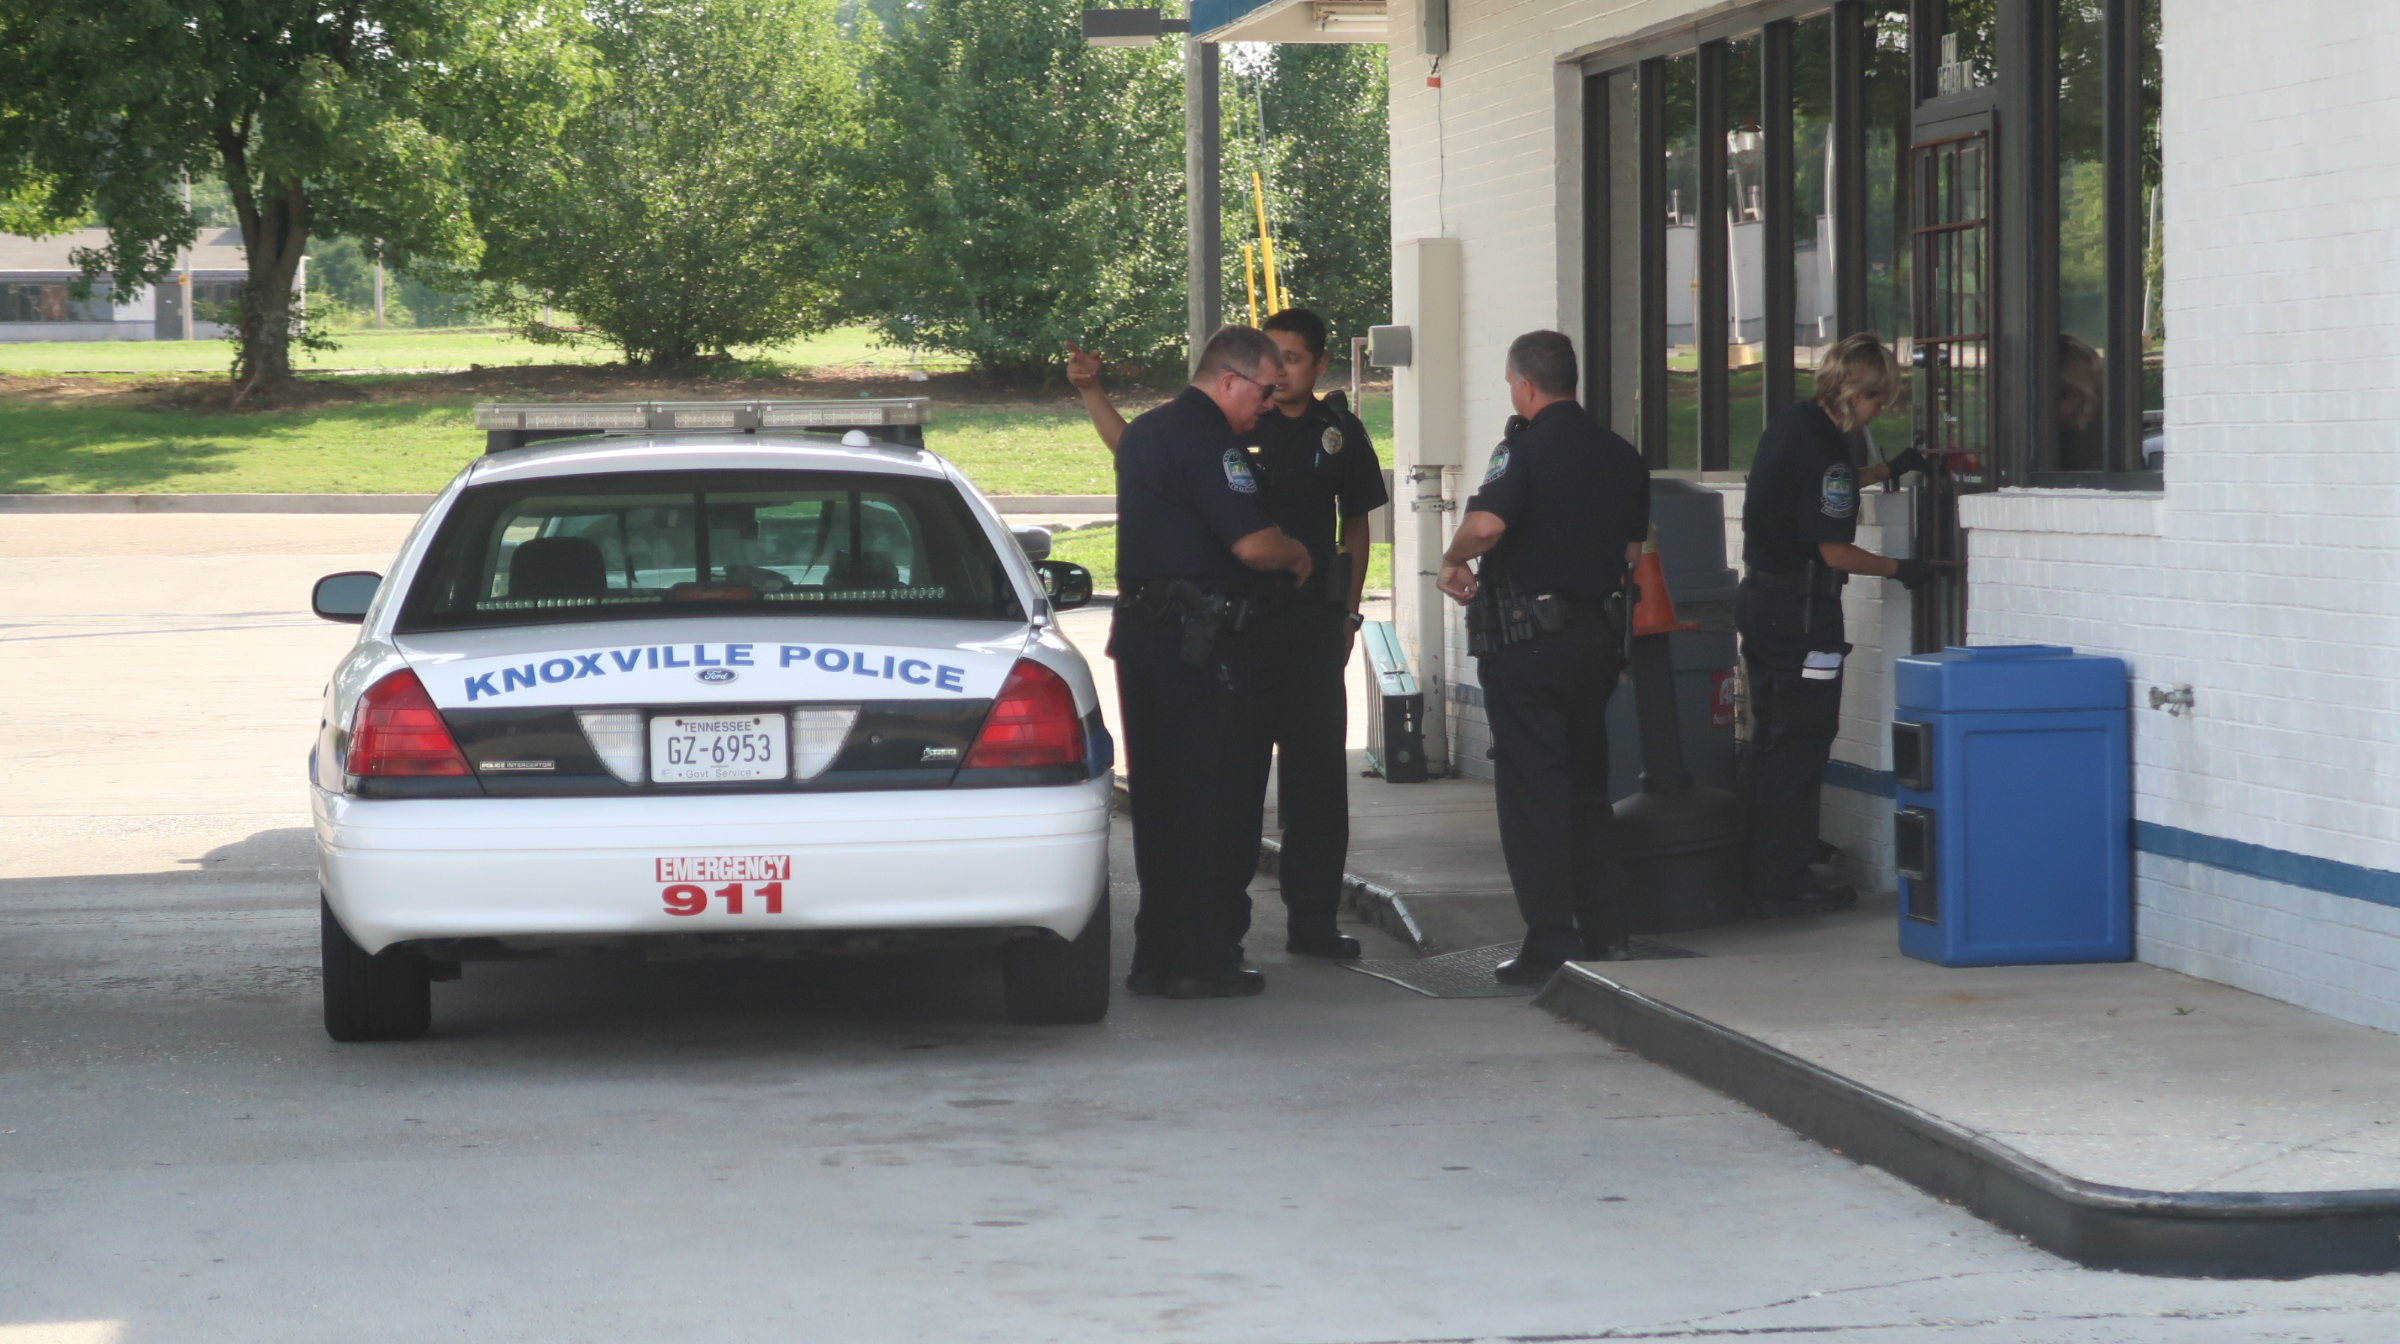 Knoxville police search for armed robbery suspect